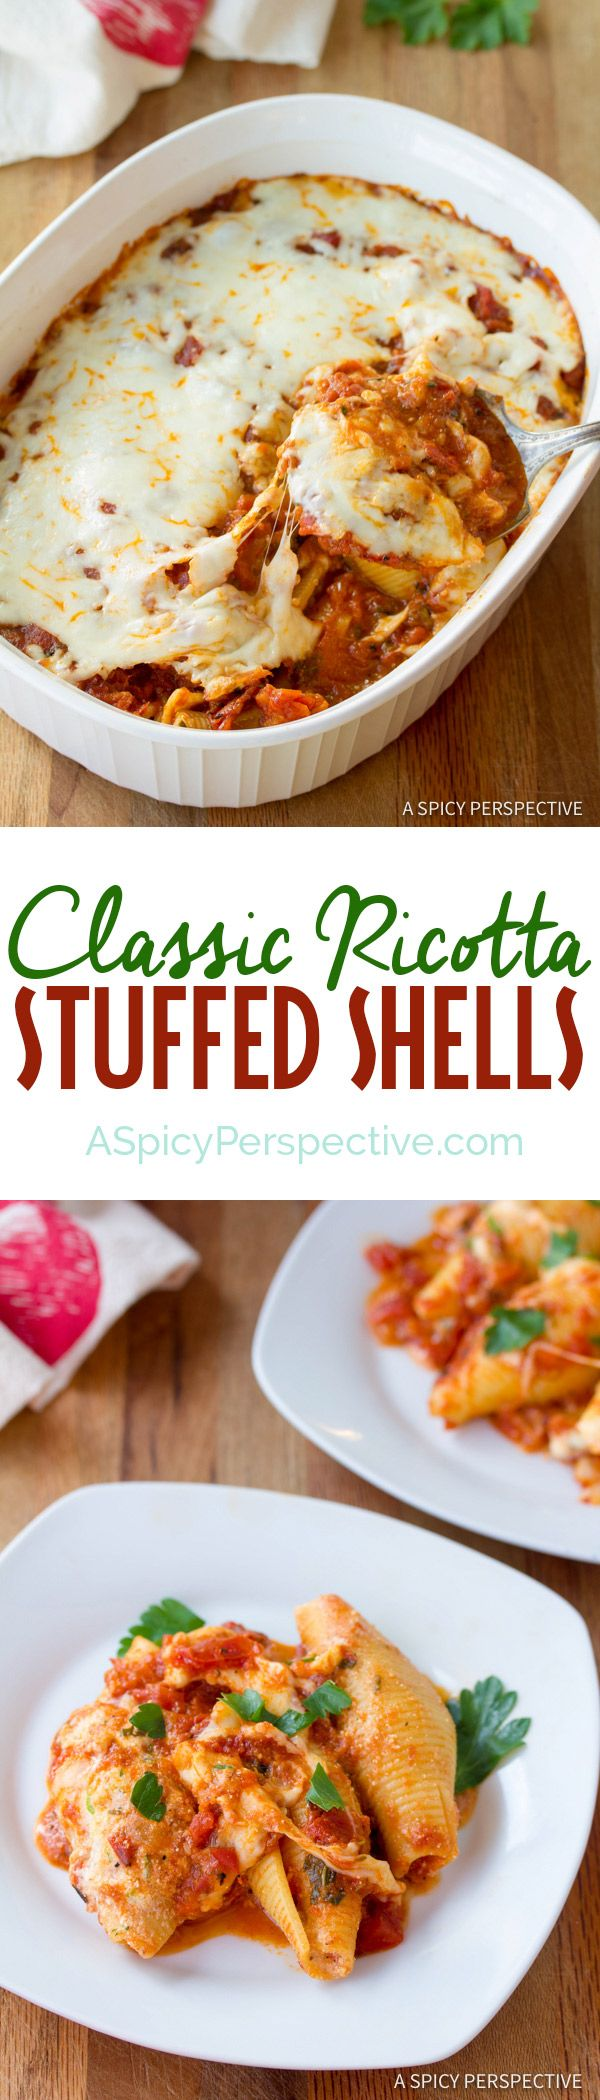 Cozy Classic Ricotta Stuffed Shells | ASpicyPerspective.com